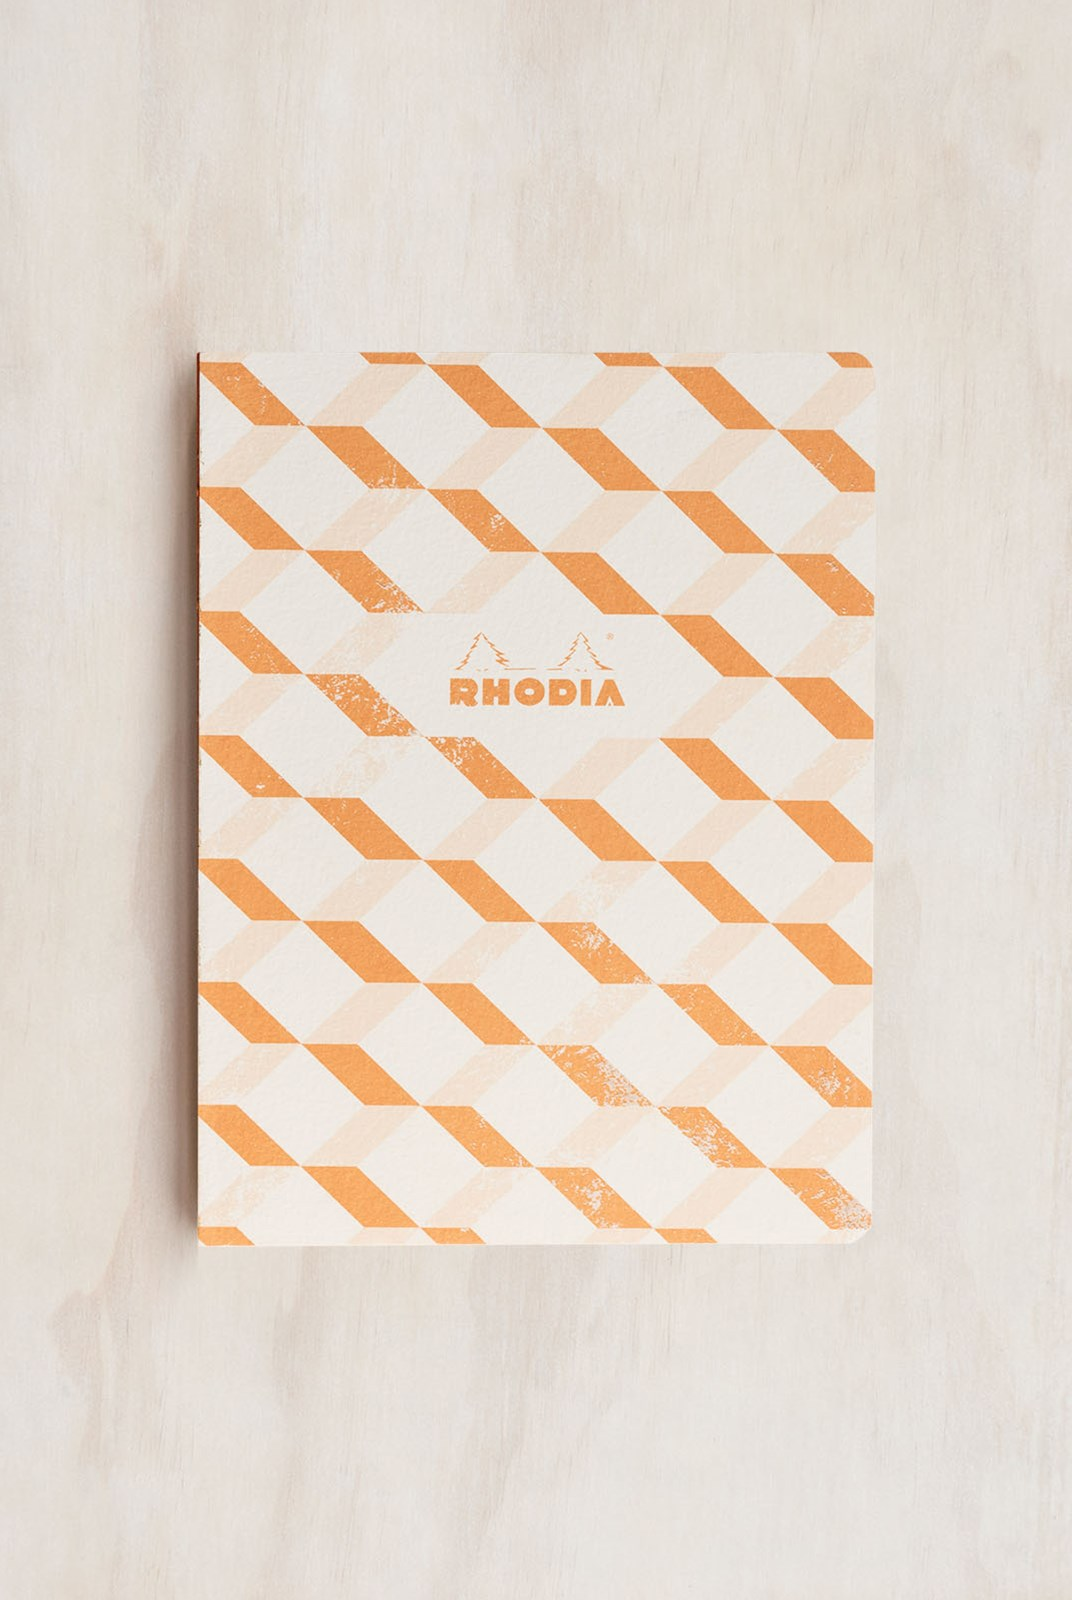 Rhodia - Heritage Notebook - Raw Bind - Grid - B5 - Escher White